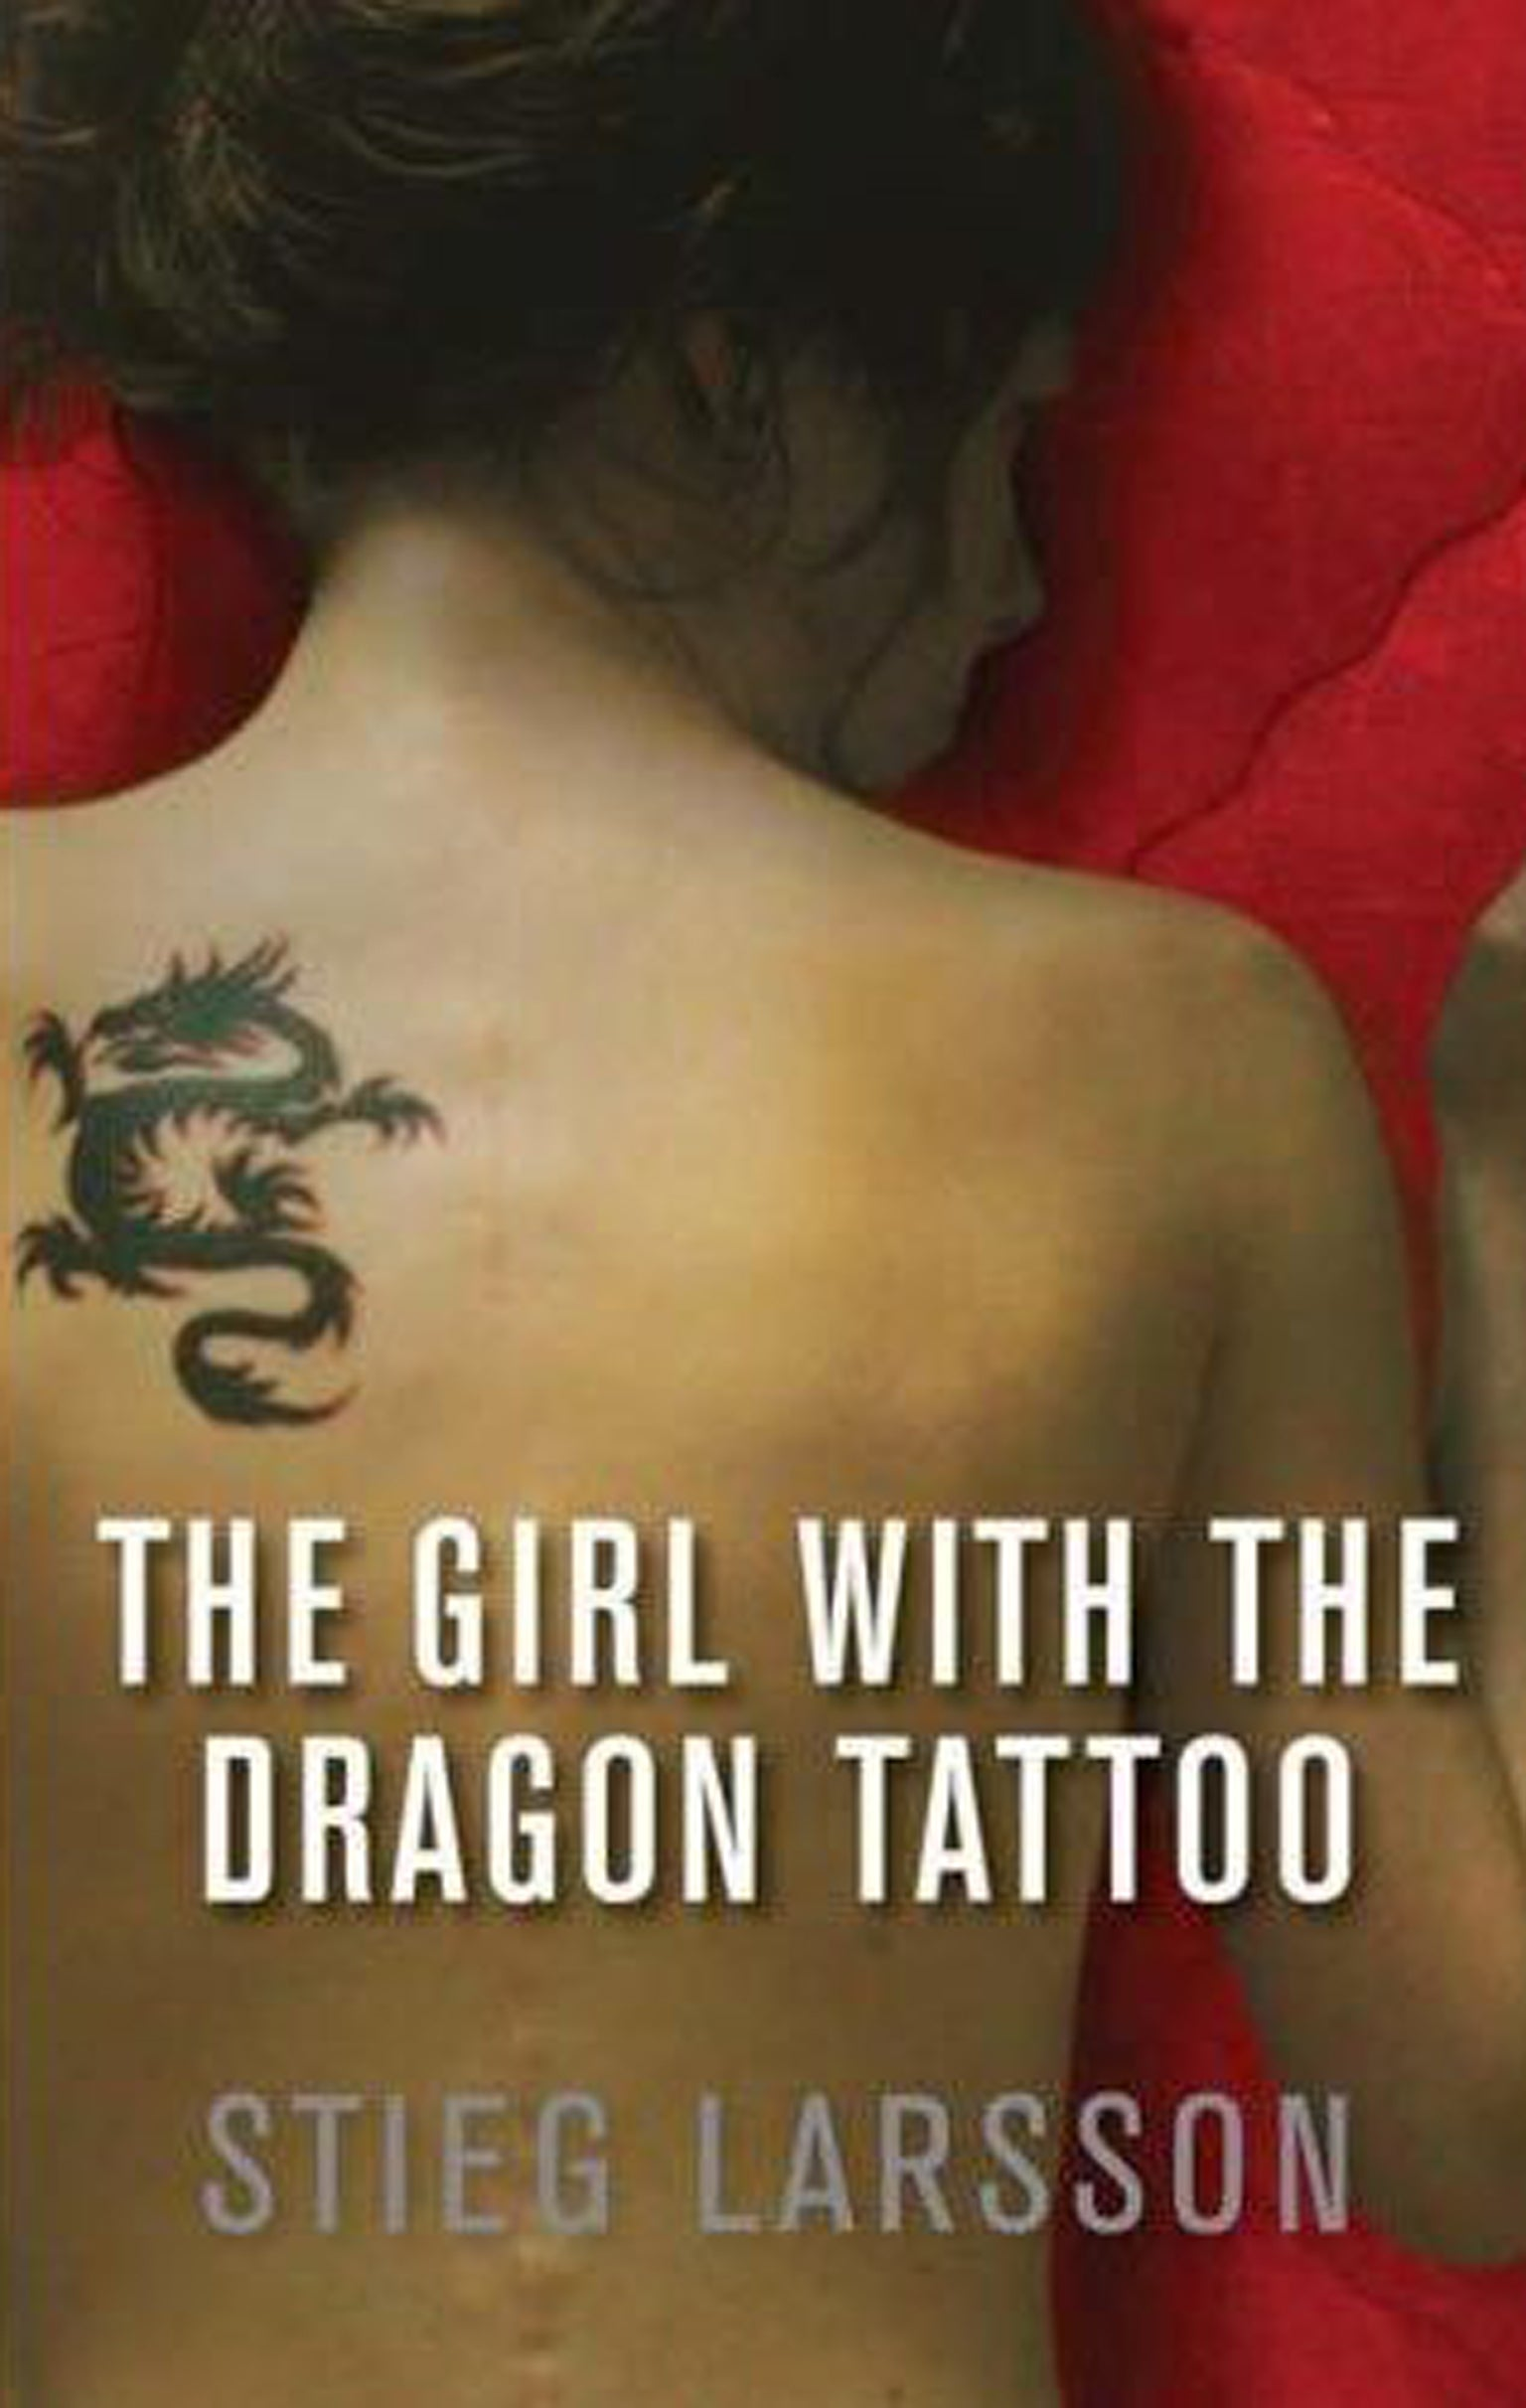 Stieg larsson 39 s girl with the dragon tattoo series to be for The girl with the dragon tattoo story